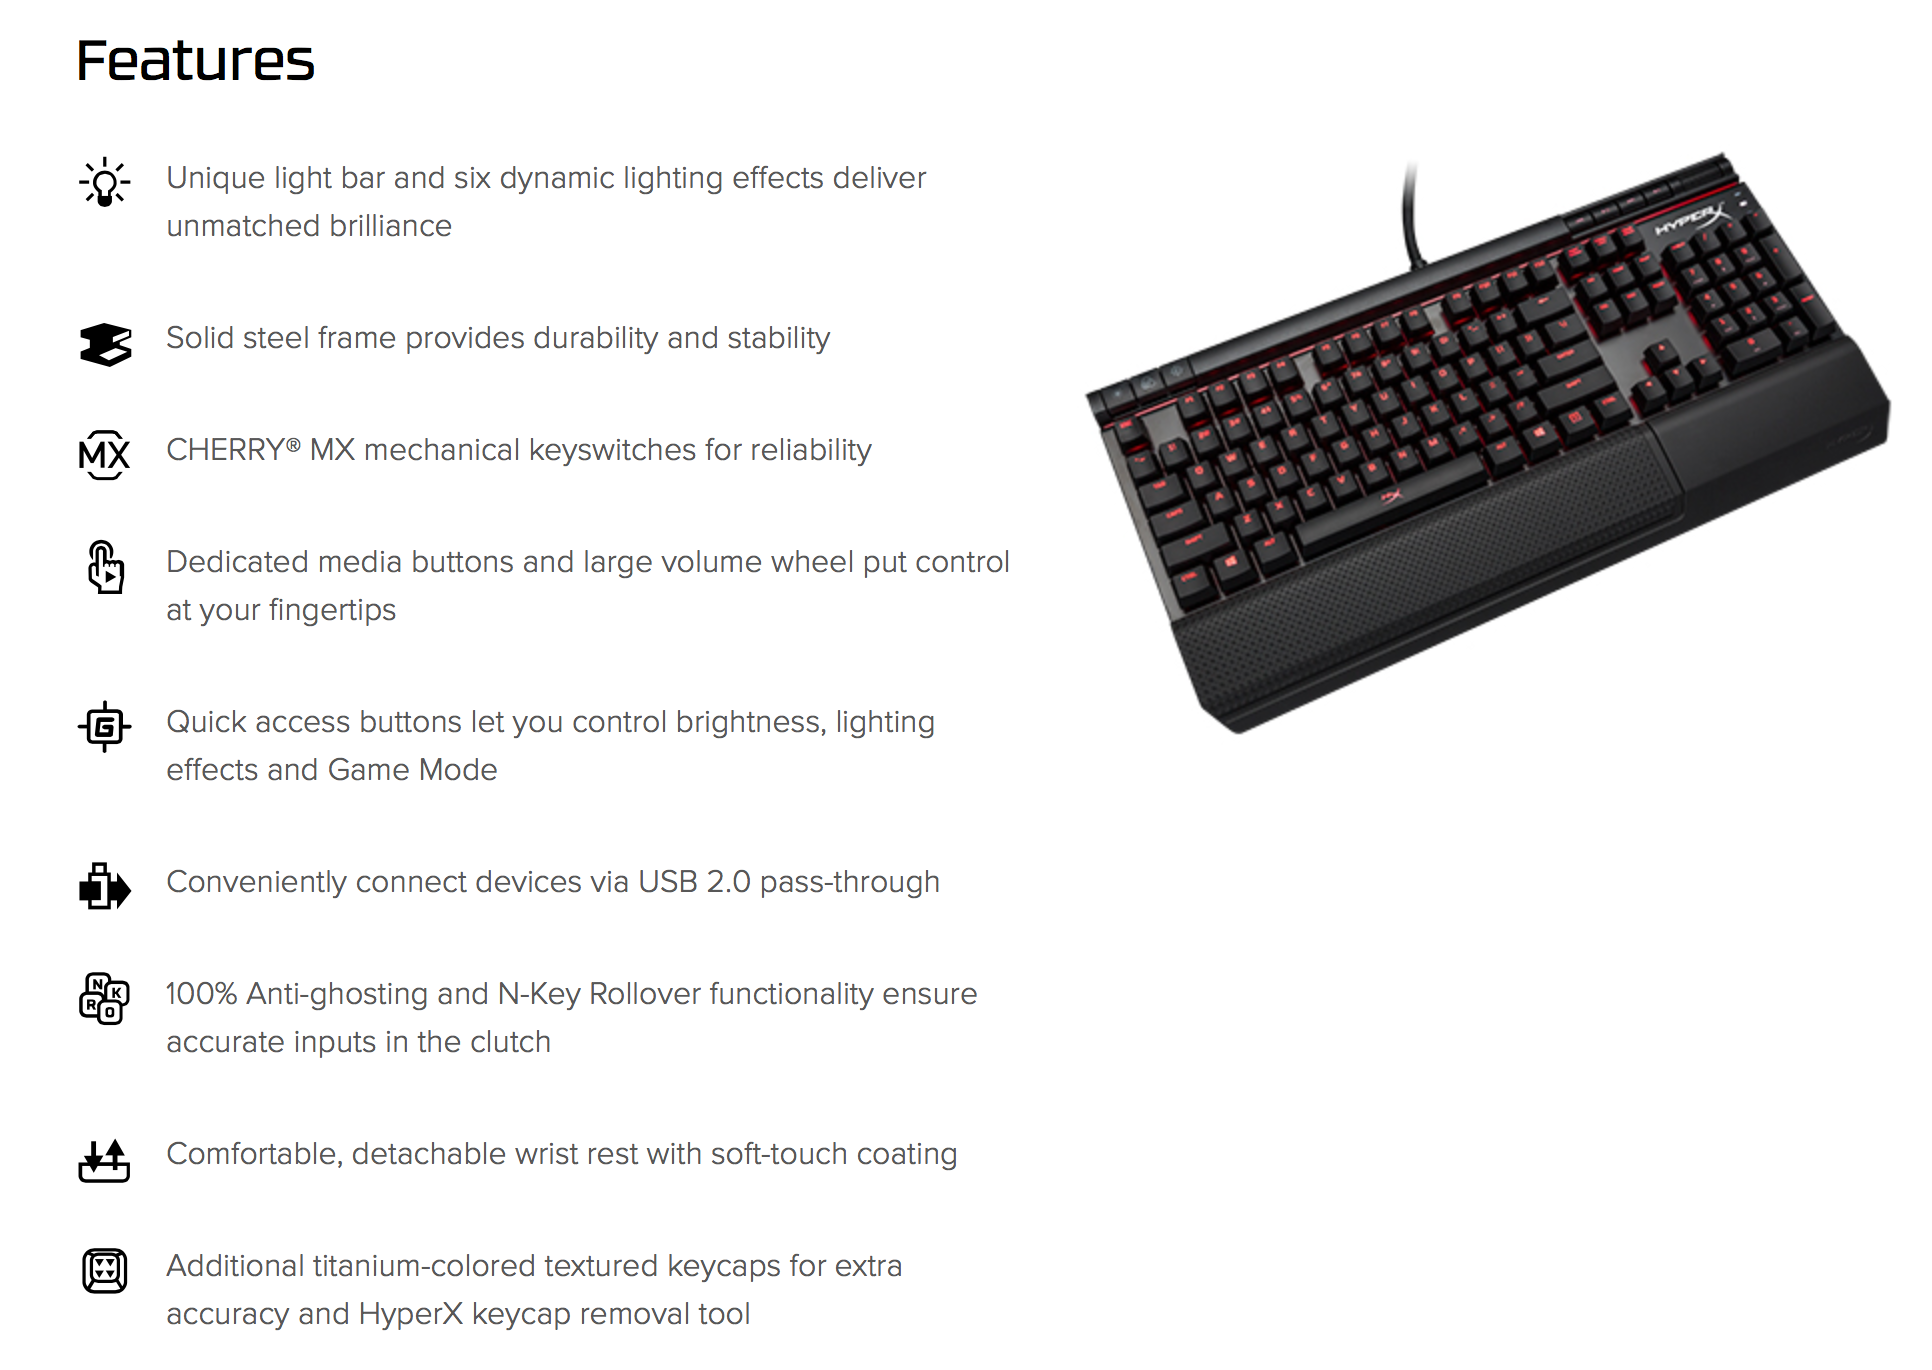 Screen Shot 2018 03 21 at 10.58.01 pm REVIEW: HyperX Alloy Elite RGB Keyboard Fuses Style With Substance